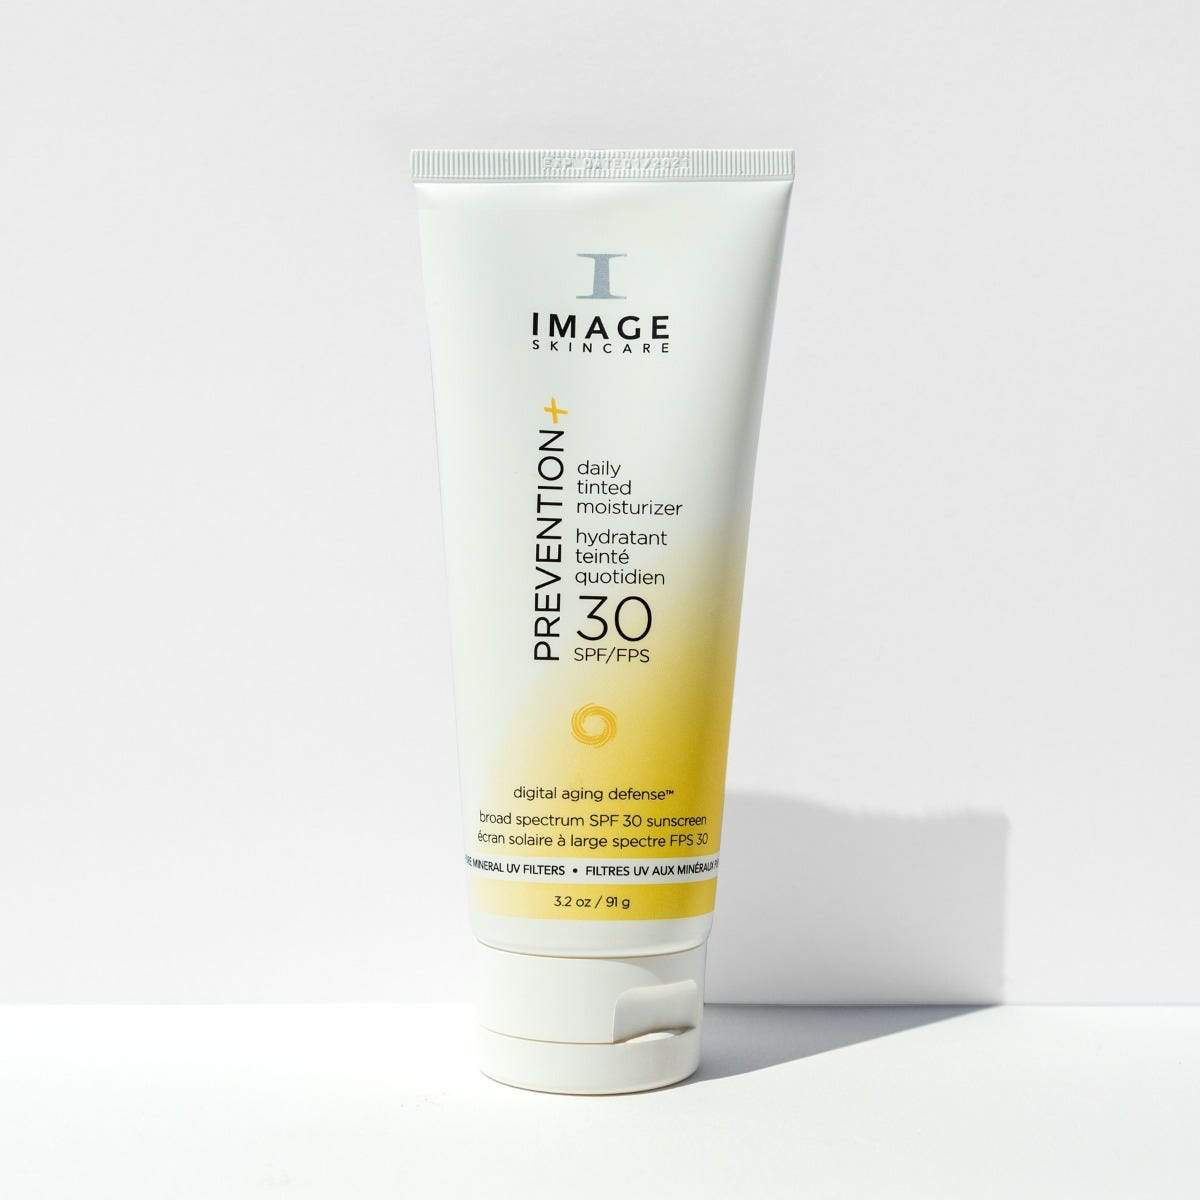 Prevention+ Daily Tinted Moisturizer SPF 30 | Image Skincare